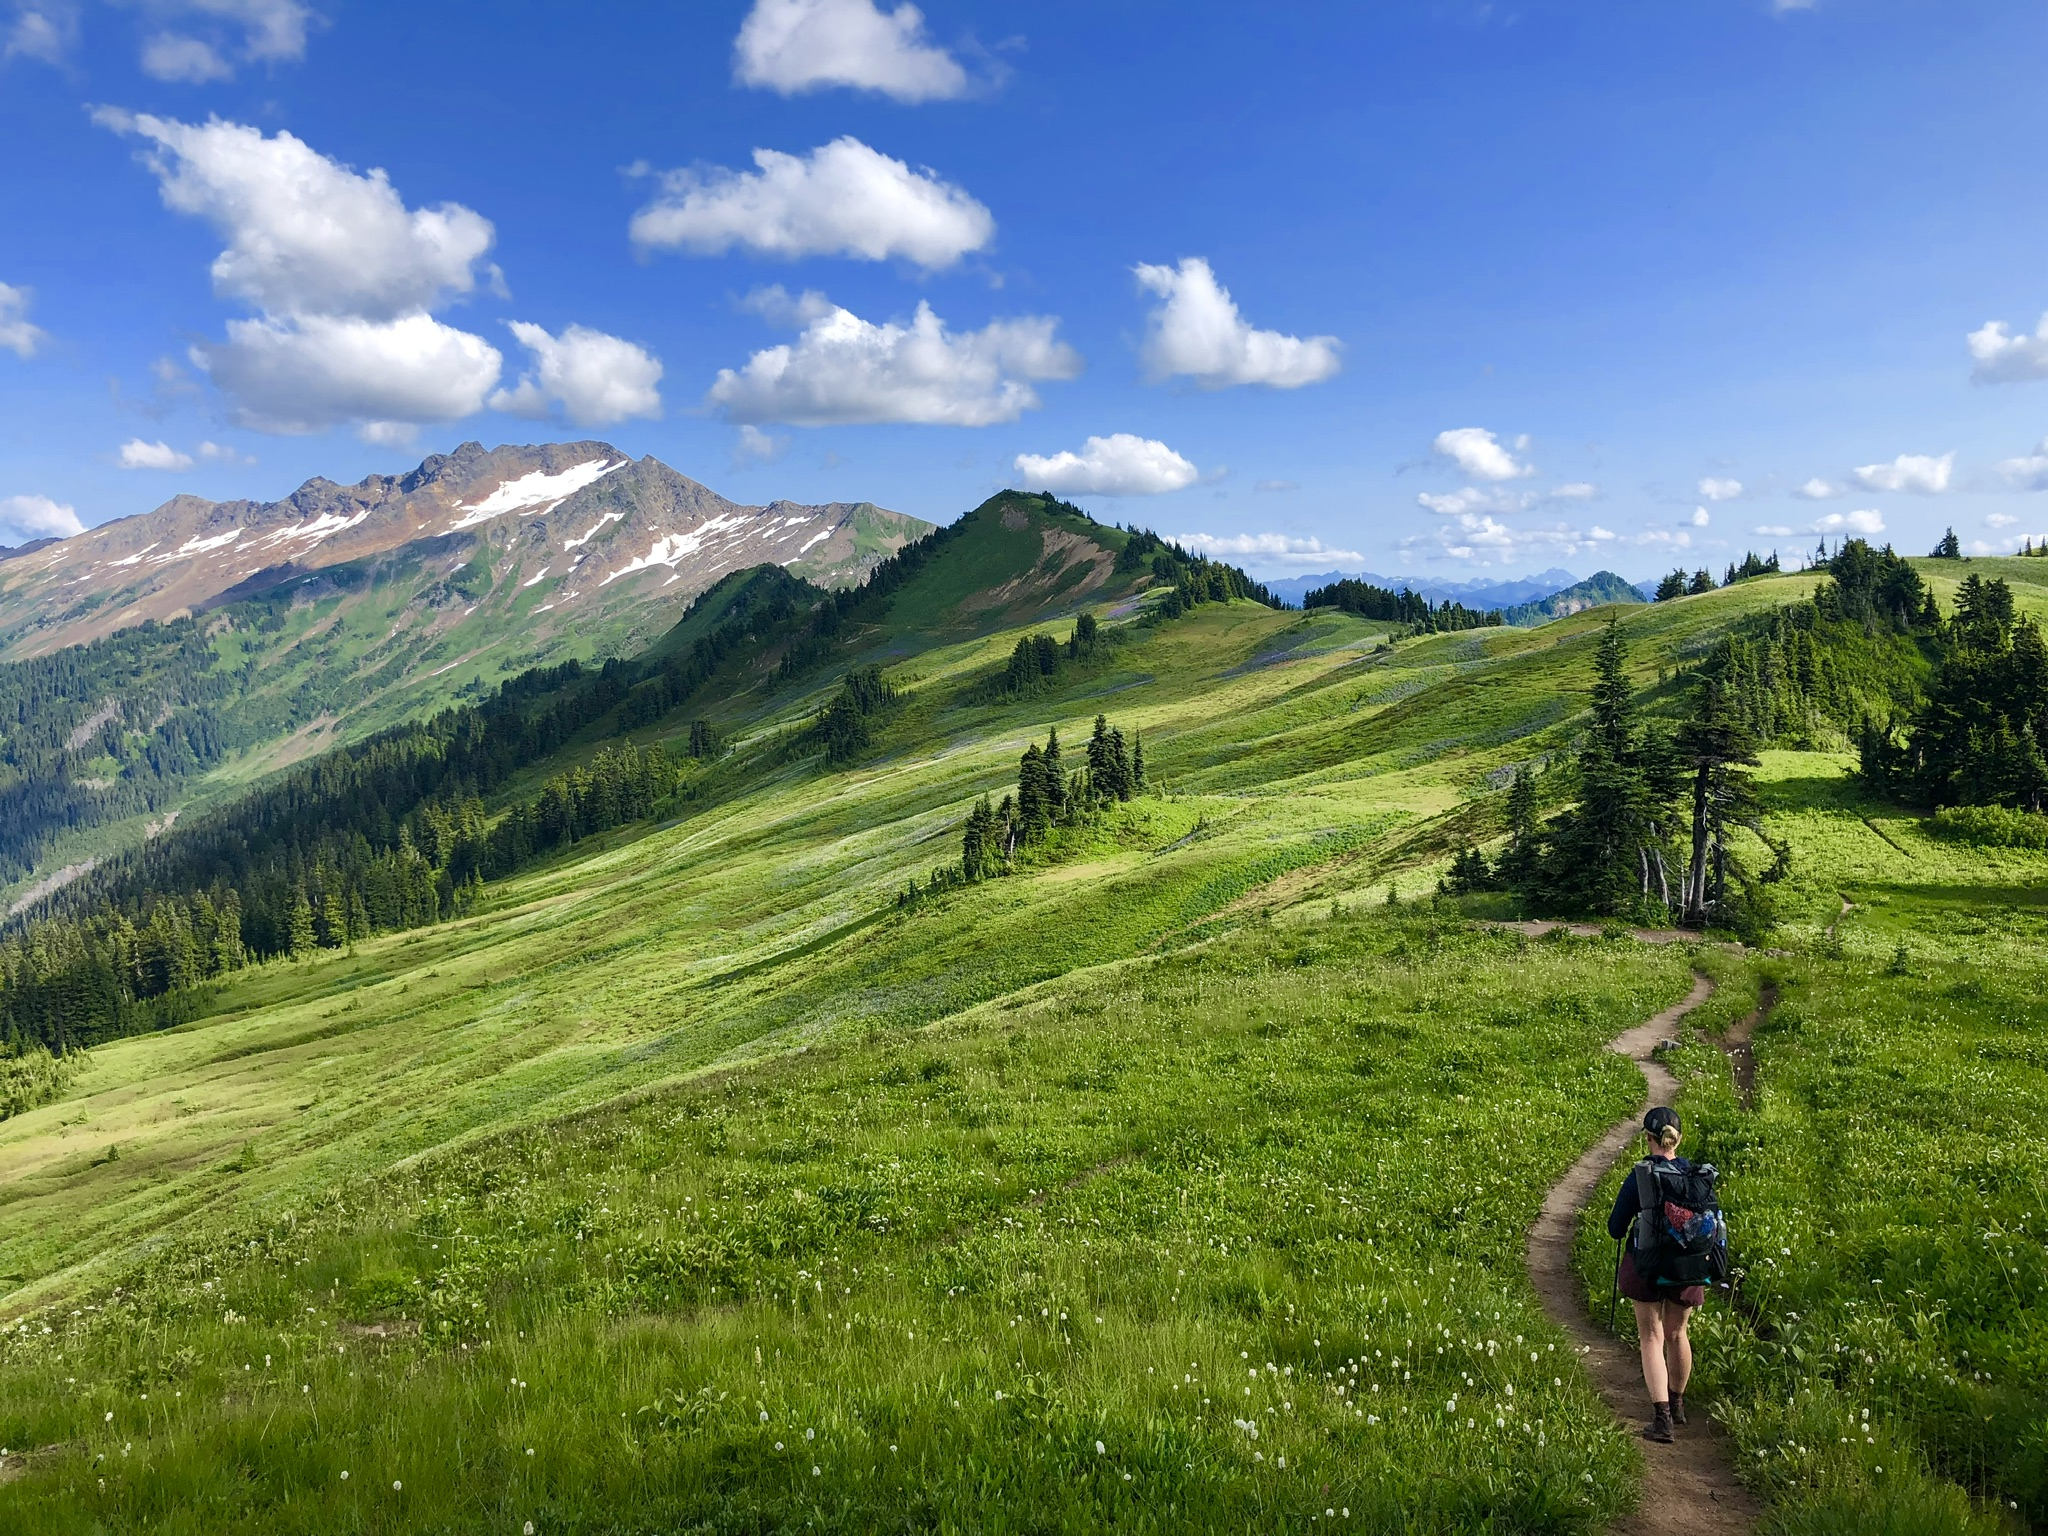 20 Amazing Pacific Crest Trail Photos to Help You Get Through the Week - The Trek